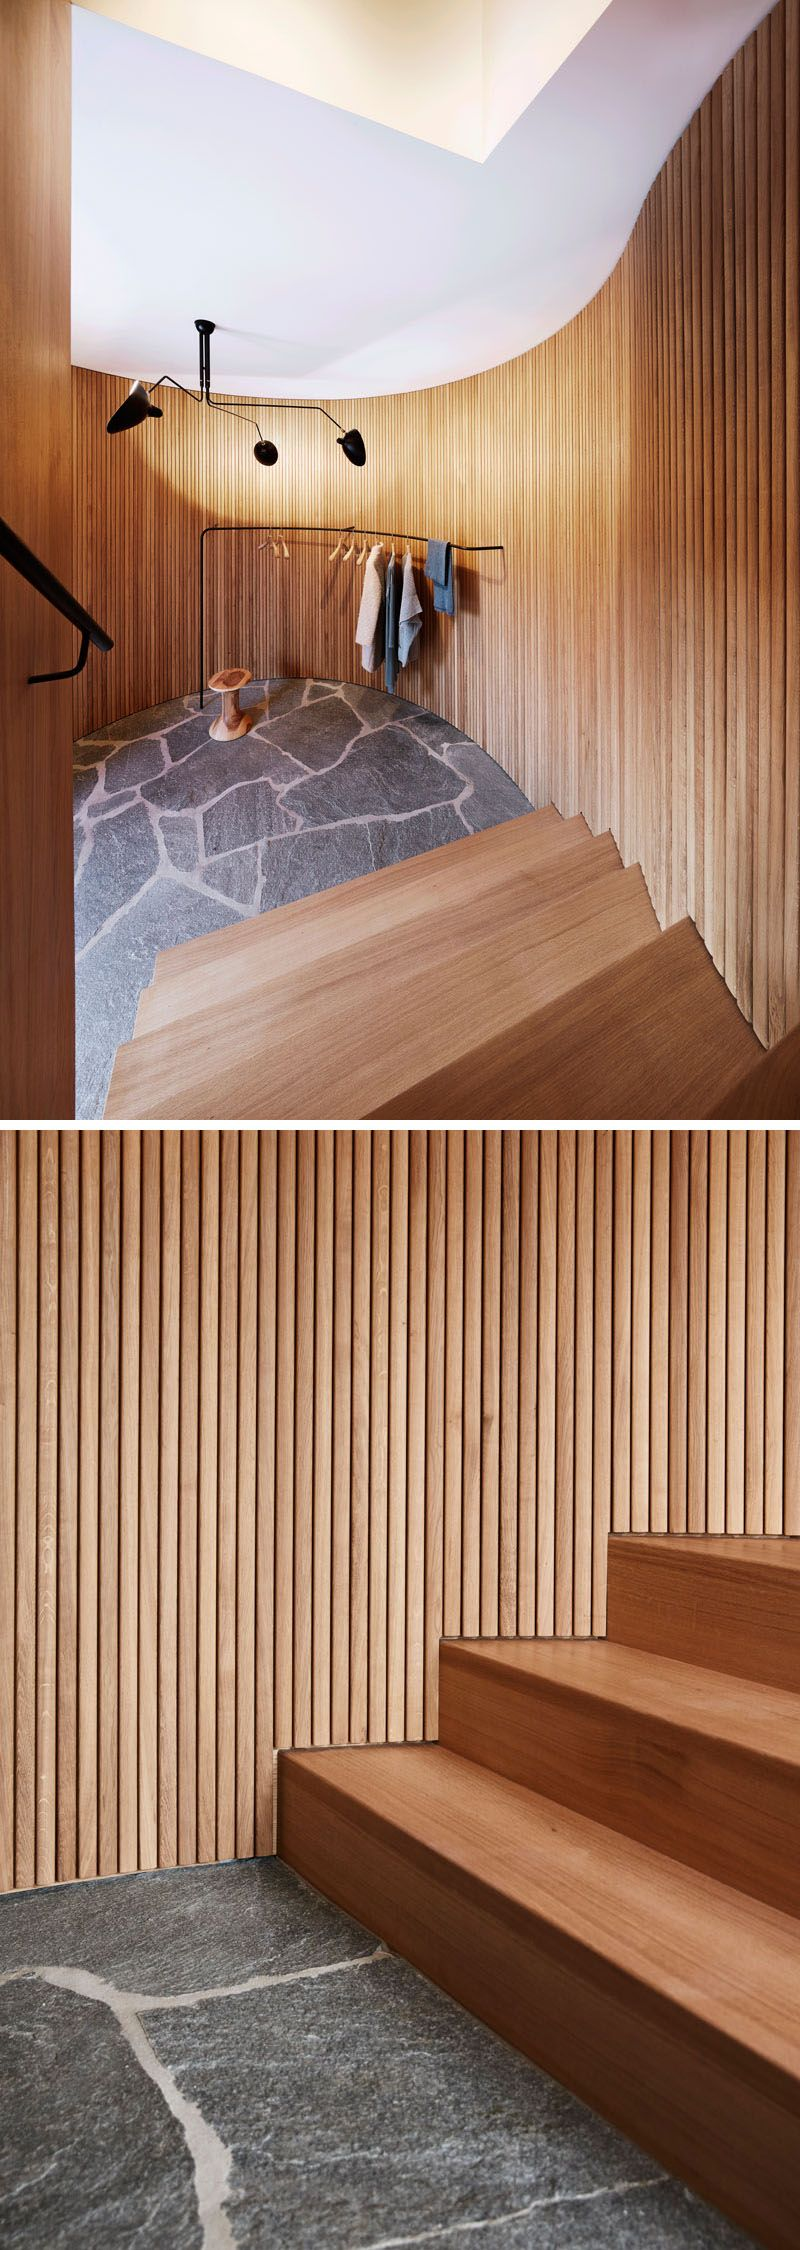 Best These Stairs Are Surrounded By Wooden Slats That Curve 400 x 300